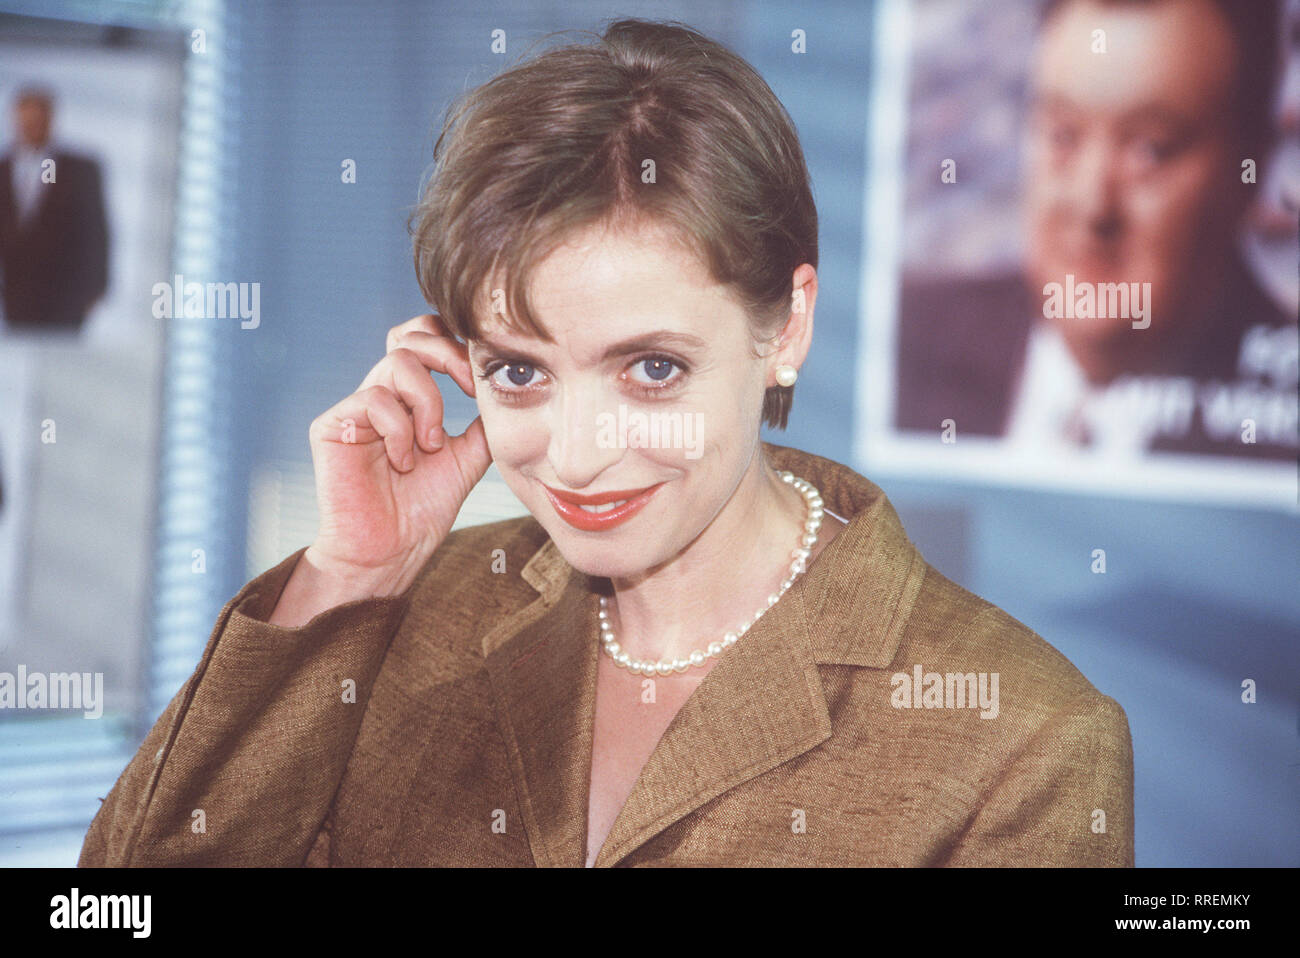 2000 Th Stock Photos & 2000 Th Stock Images - Alamy